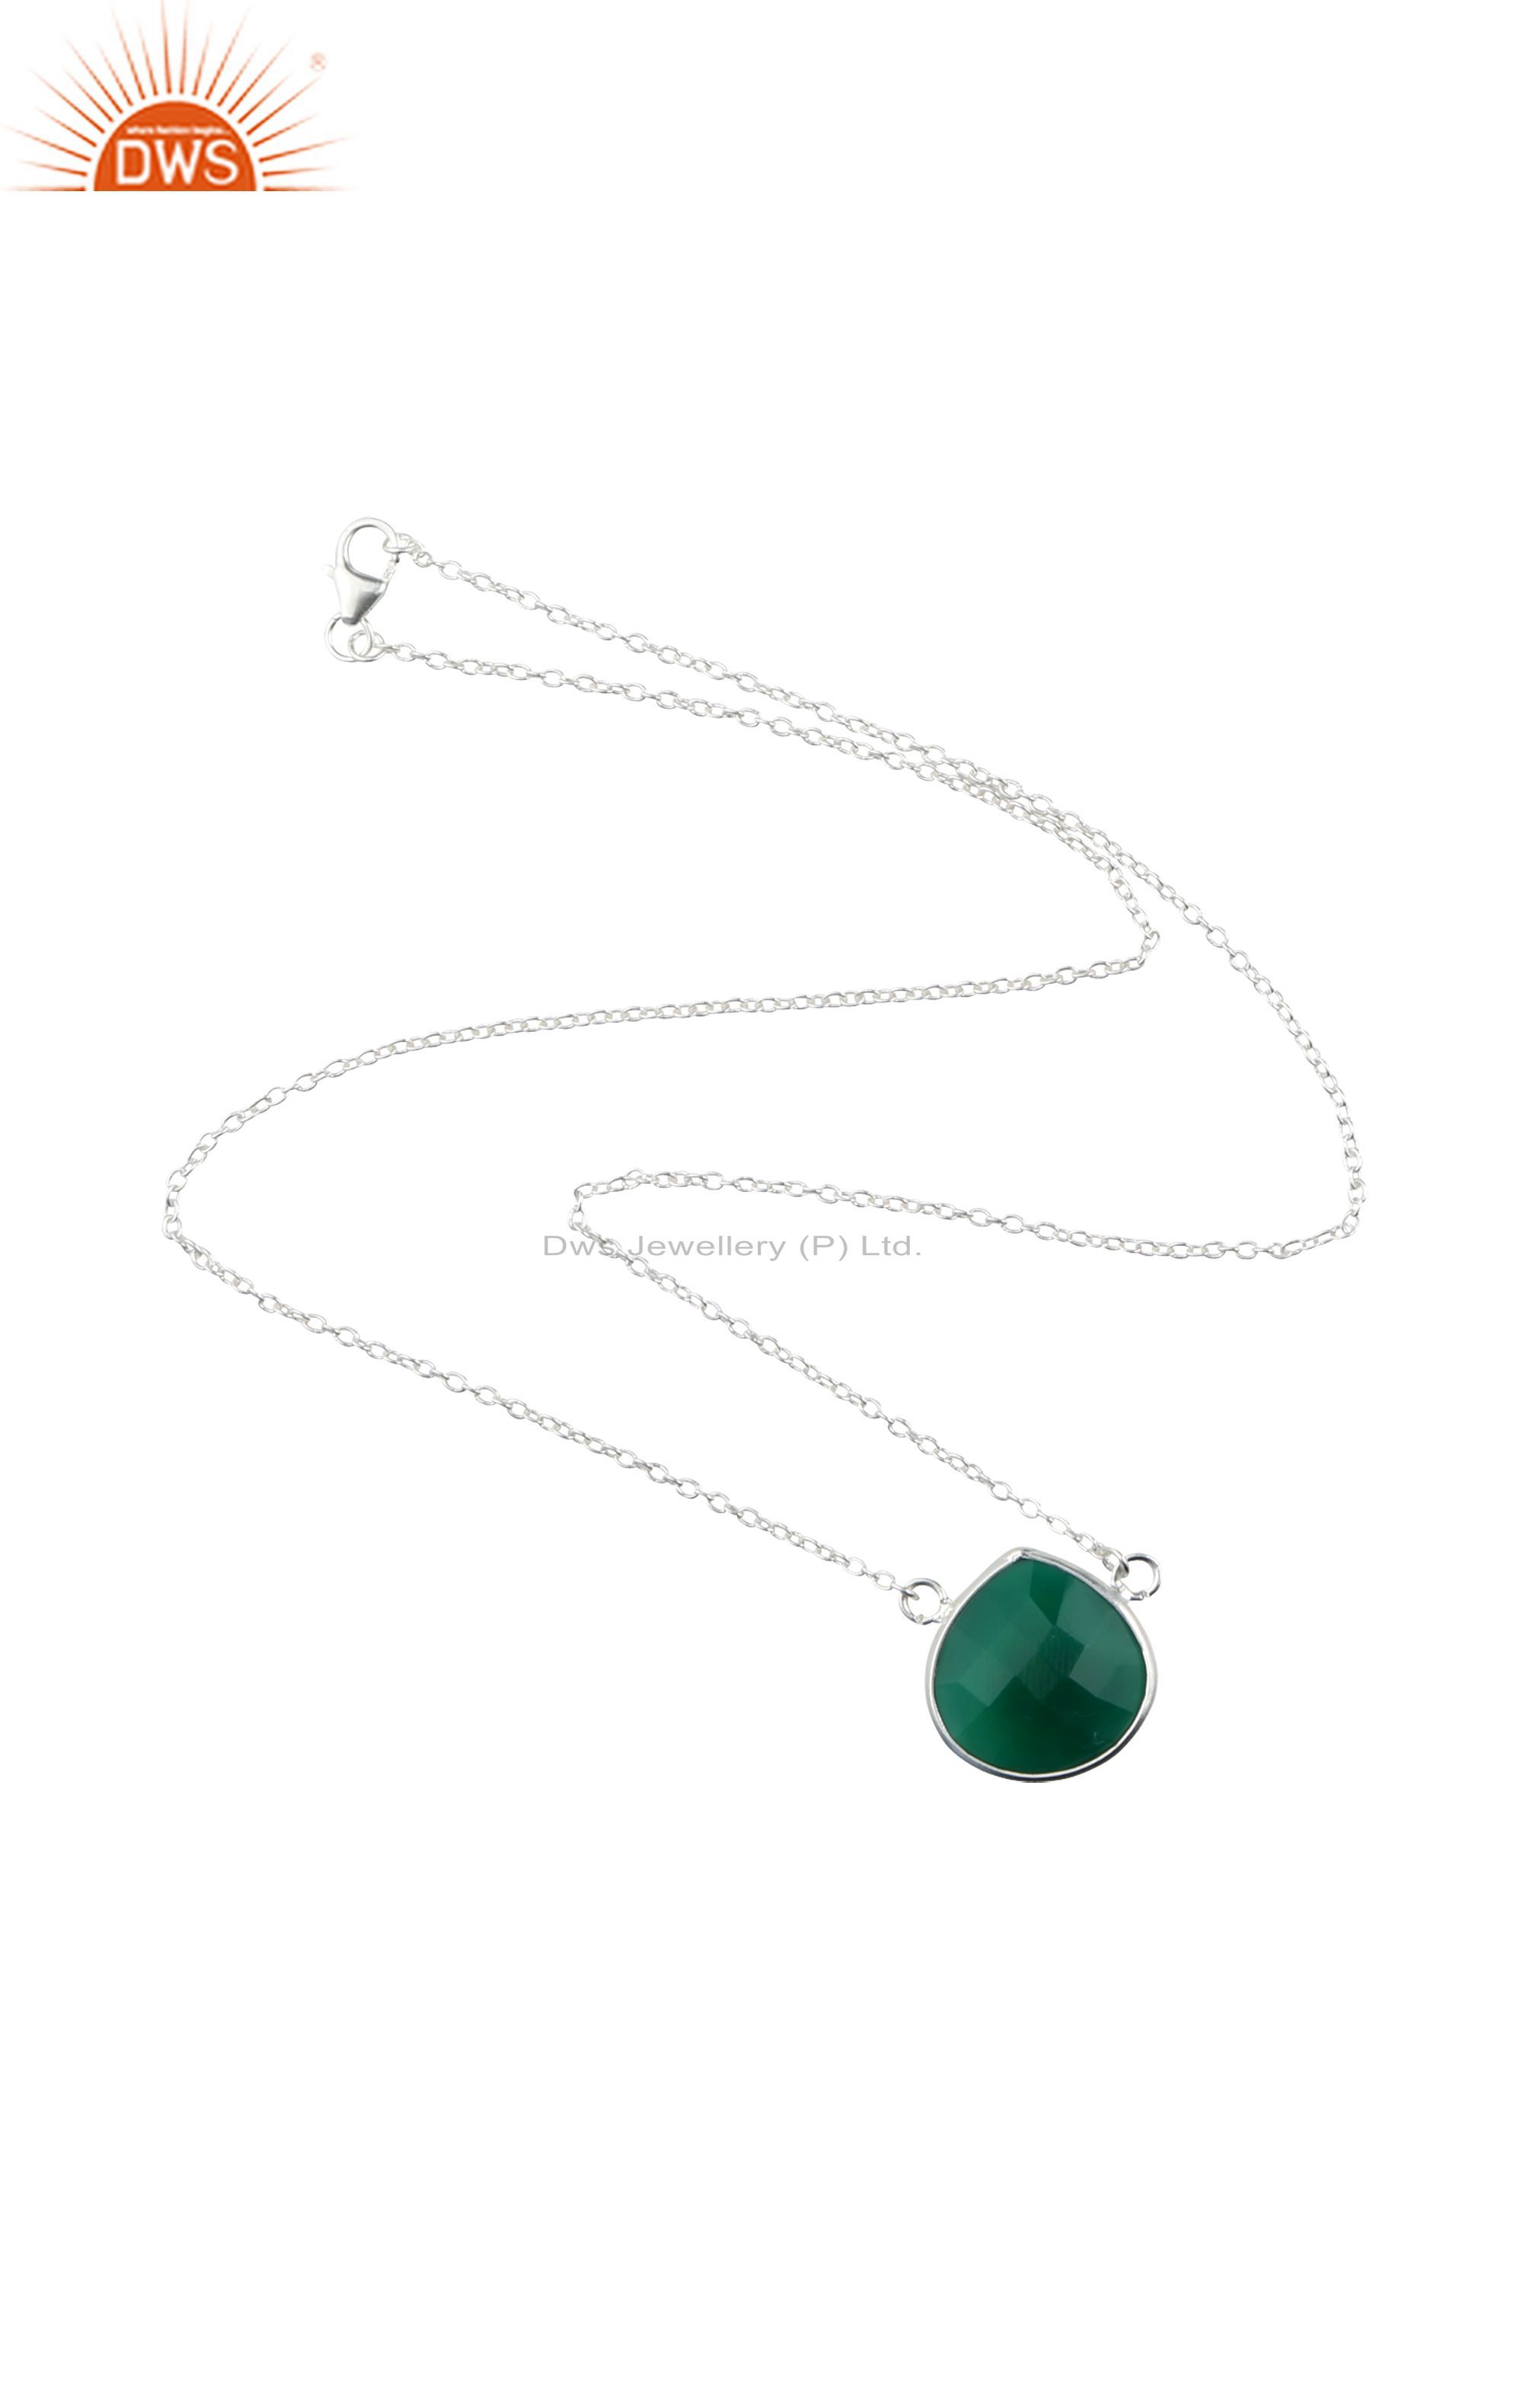 Handmade Sterling Silver Natural Green Onyx Faceted Gemstone Necklace